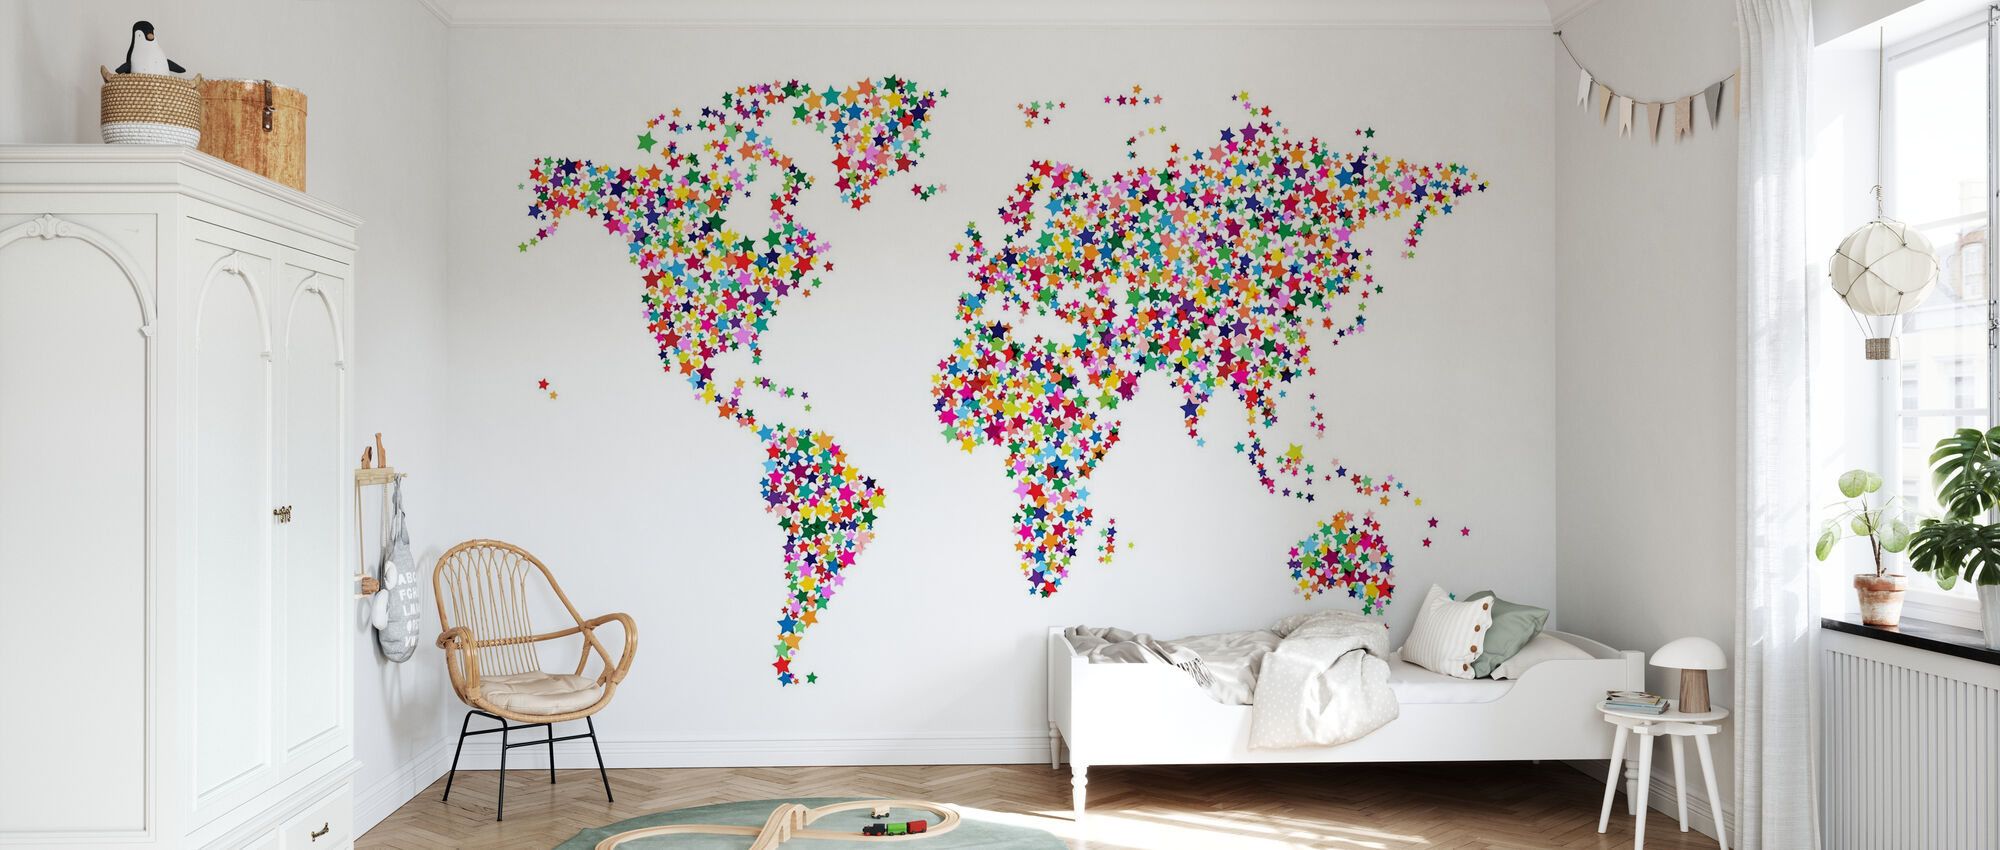 Stars World Map Color - Wallpaper - Kids Room